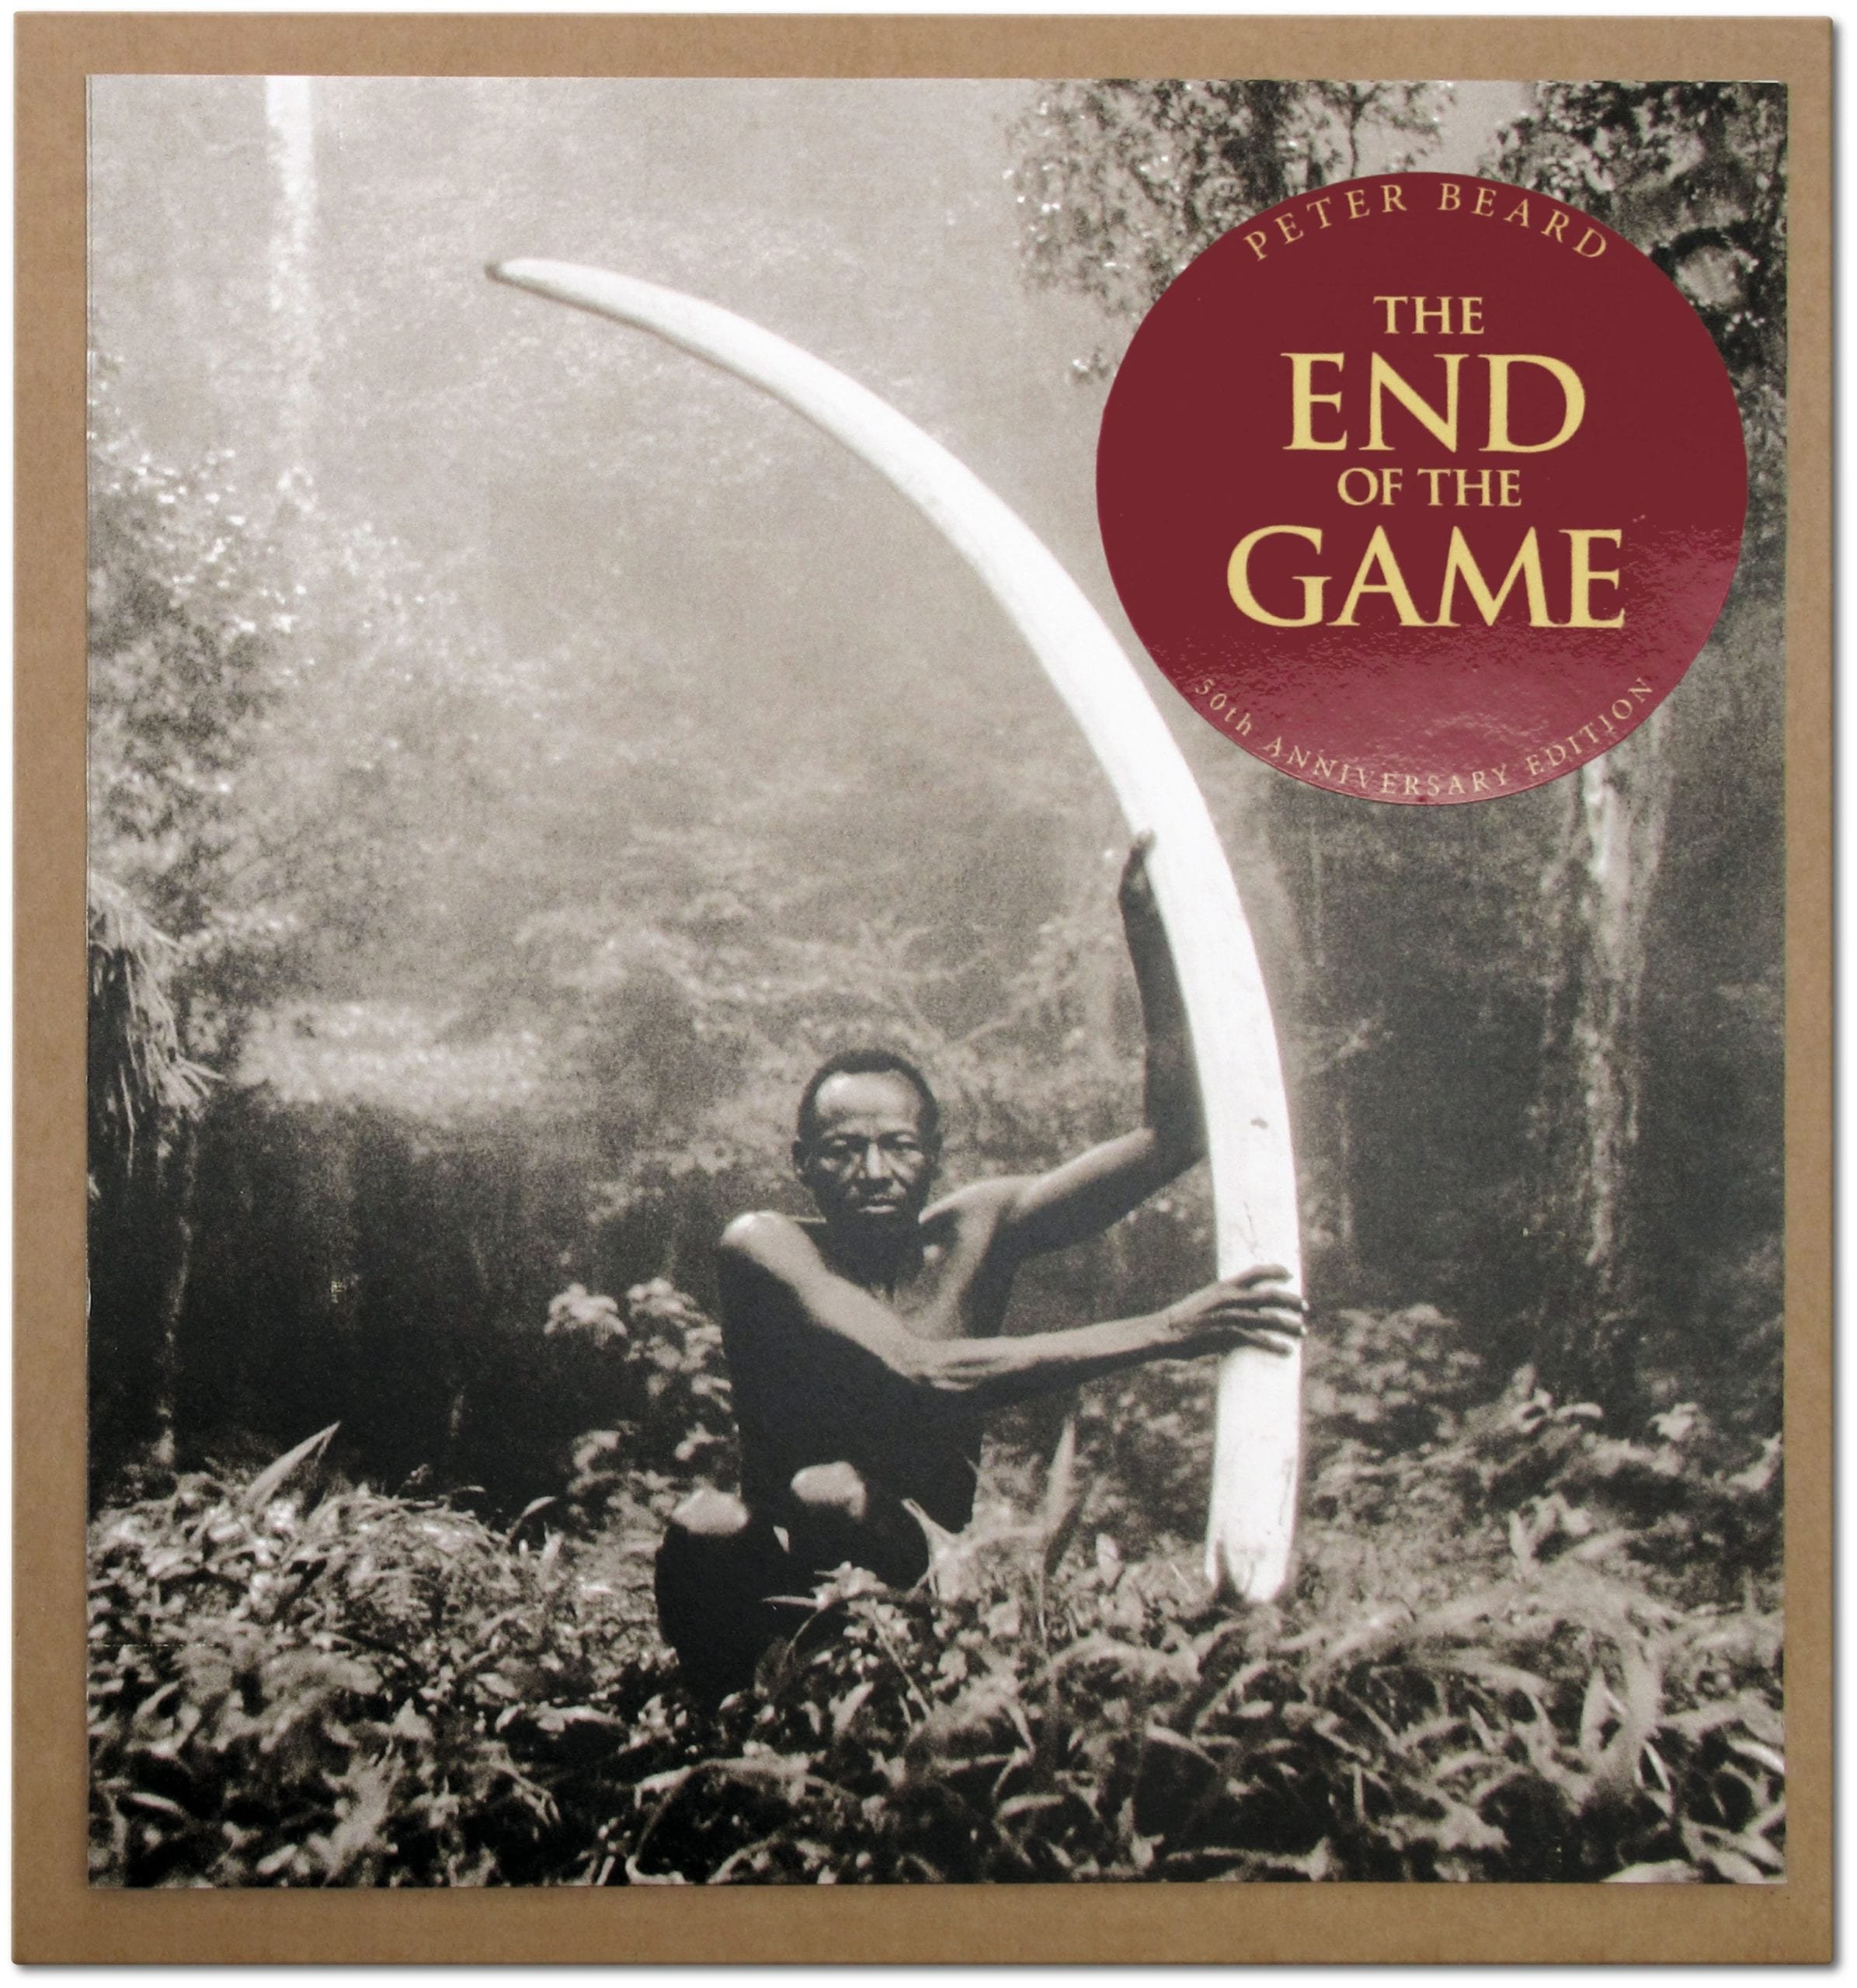 BEARD_END_OF_THE_GAME_50YRS_FO_GB_SLIPCASE002_45301